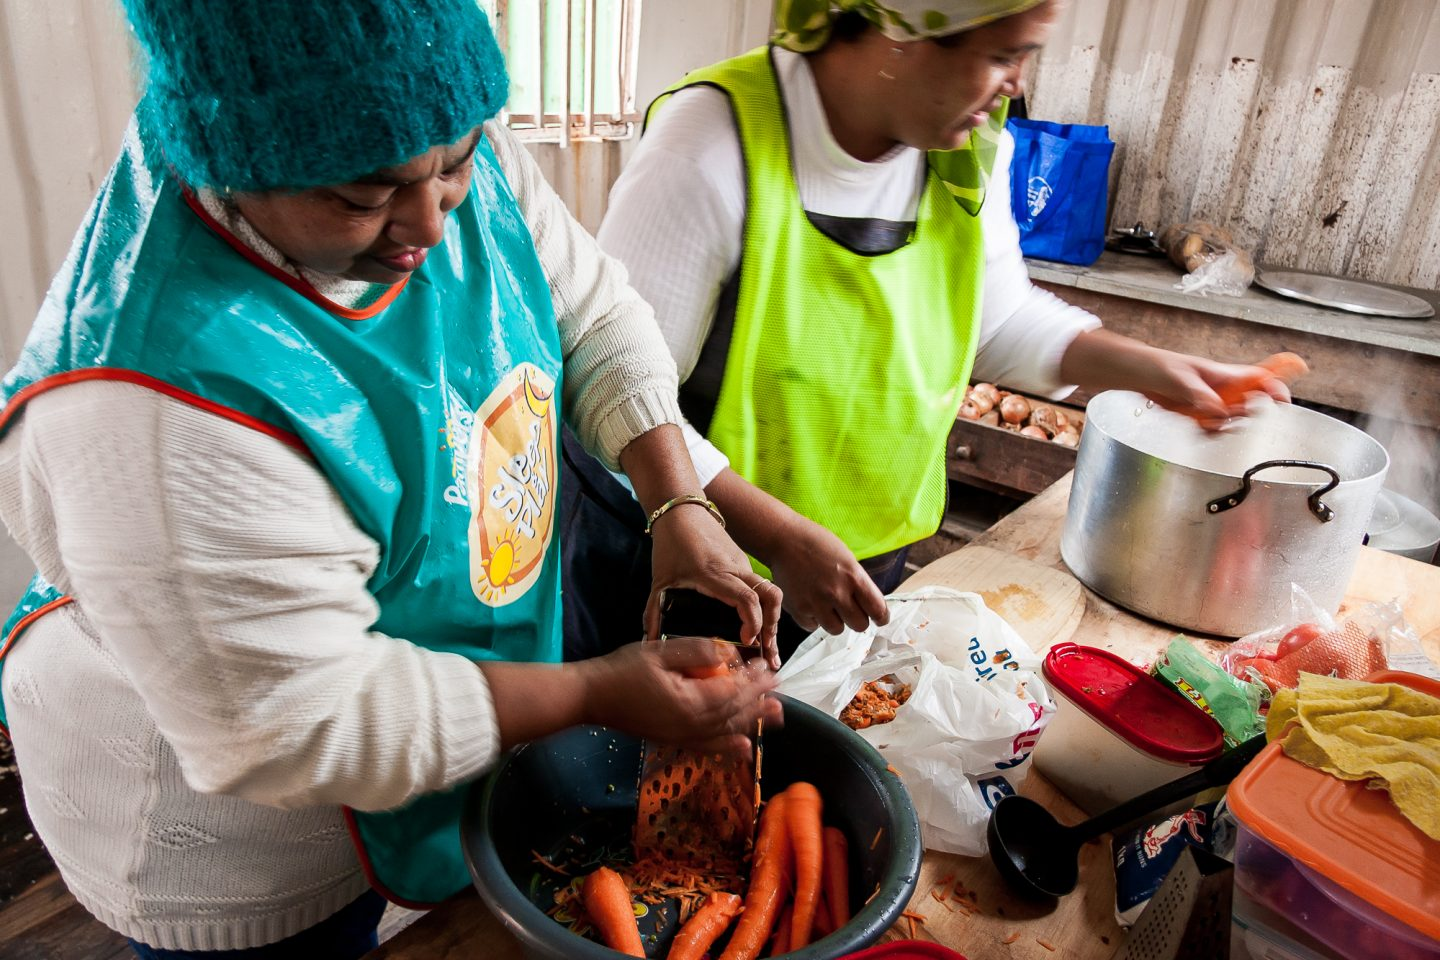 Gamieda Booysen and Ruwayda Ryklief prepare soup for the communities children and youth.